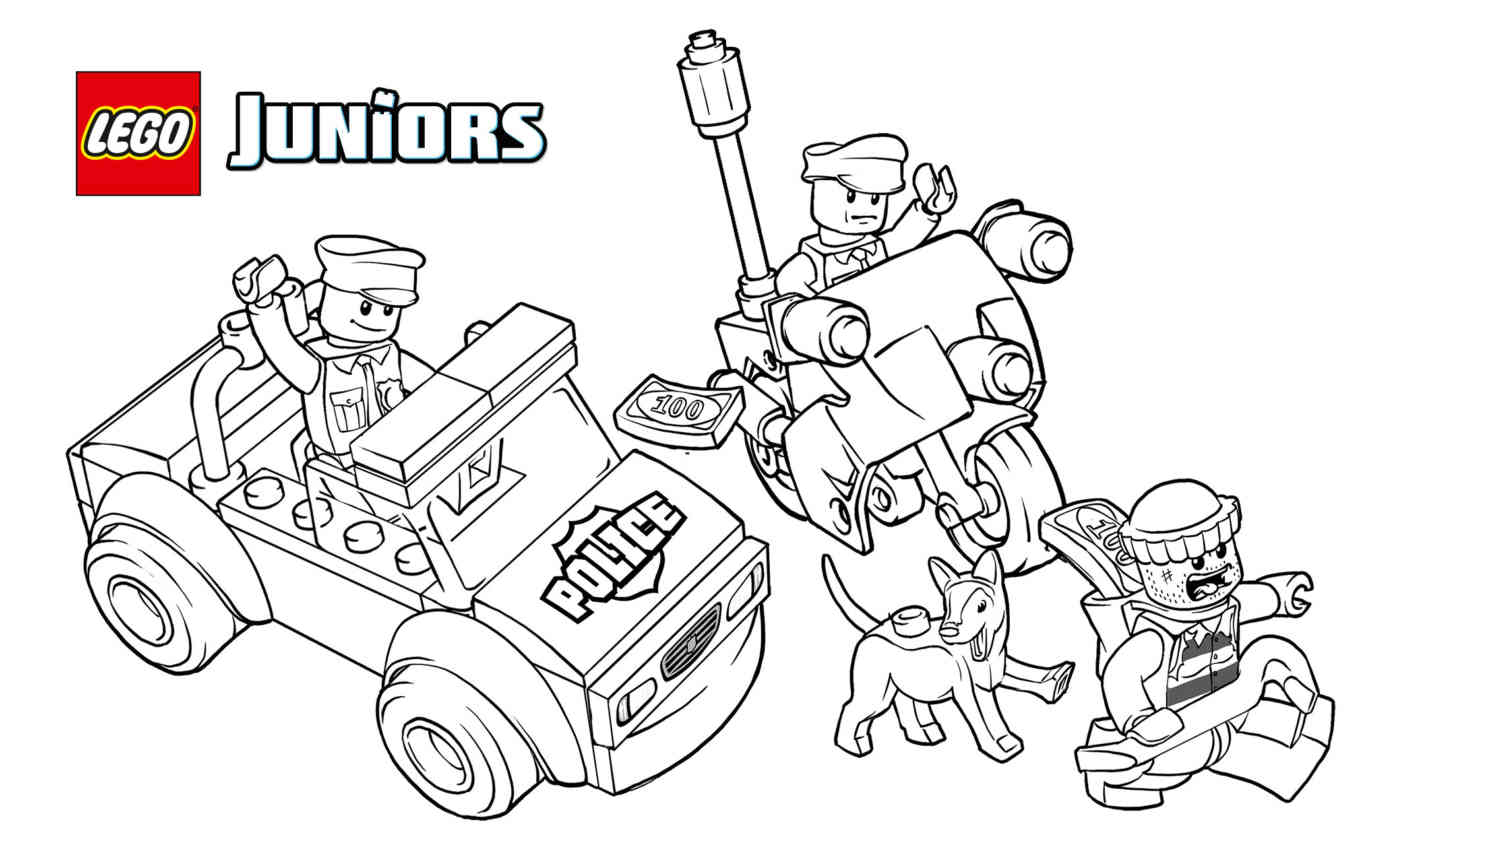 Lego Juniors Police Coloring Pages